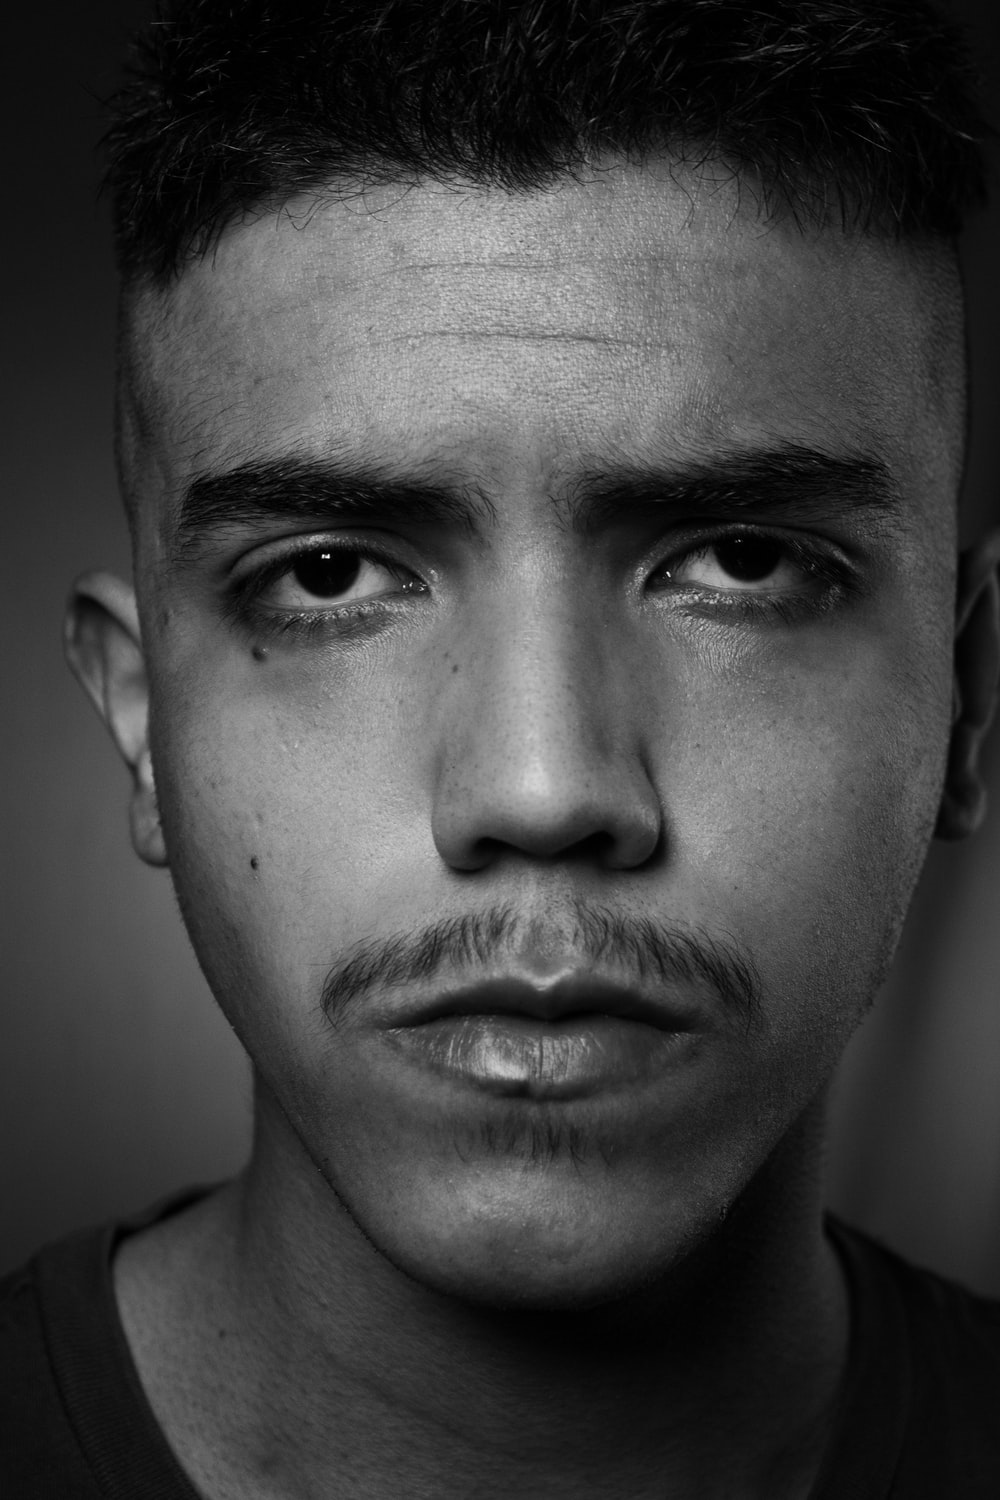 mans face in grayscale